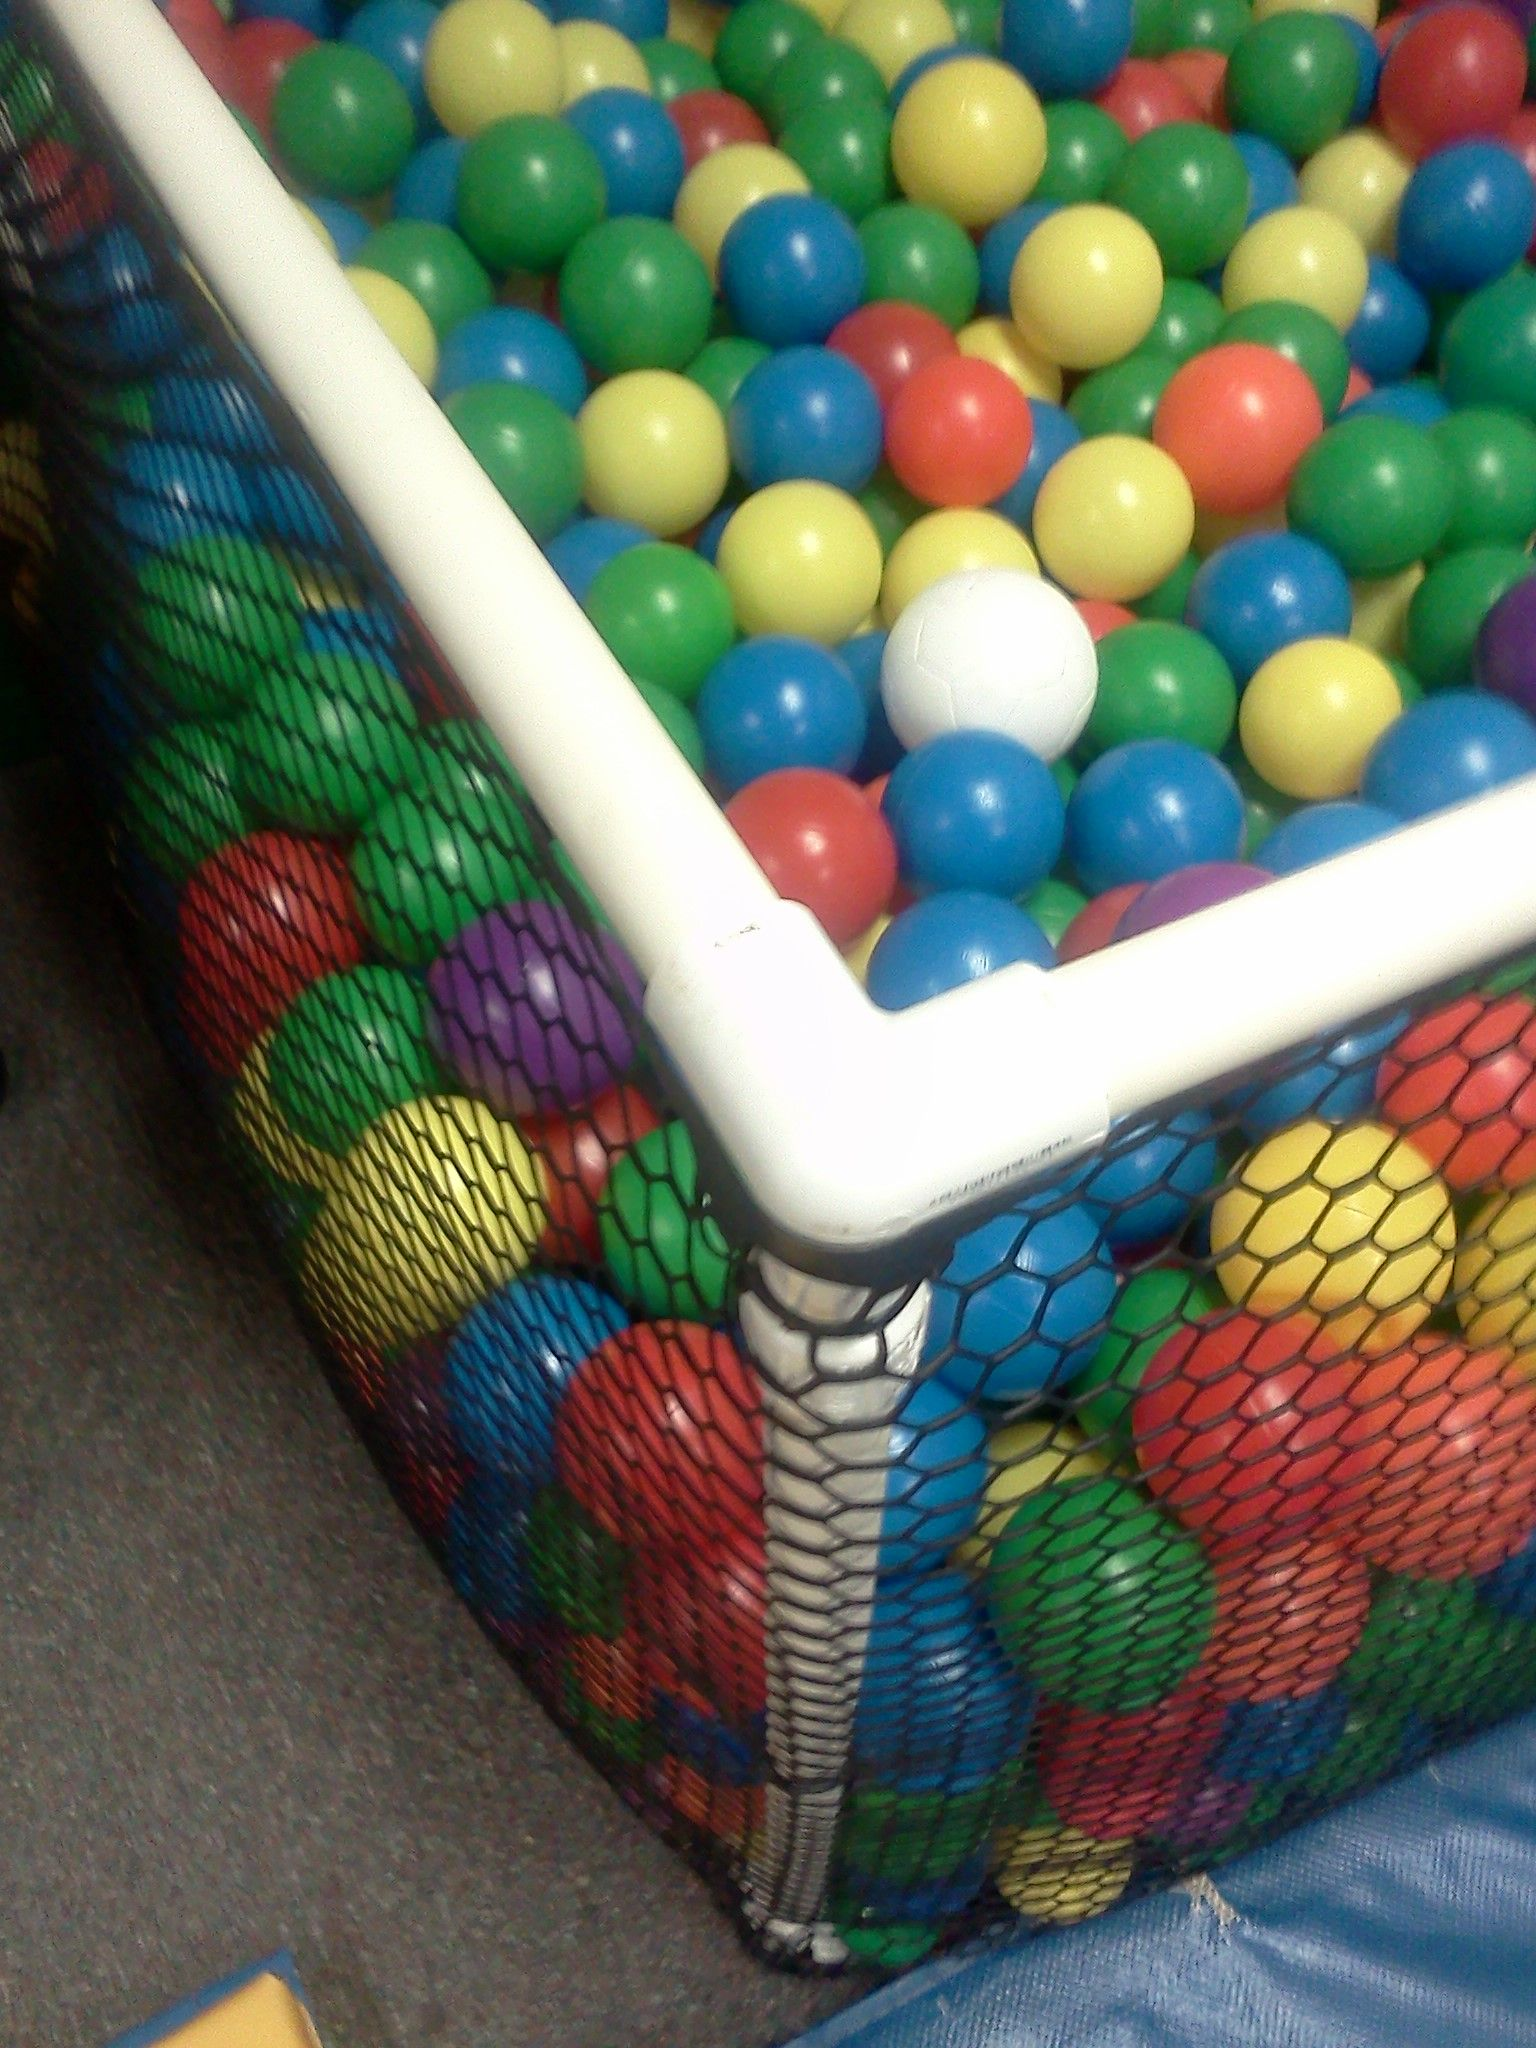 Bubble chairs for under 100 dollars - Homemade Ball Pit Under 100 Without The Balls And Under 2 Hours To Make